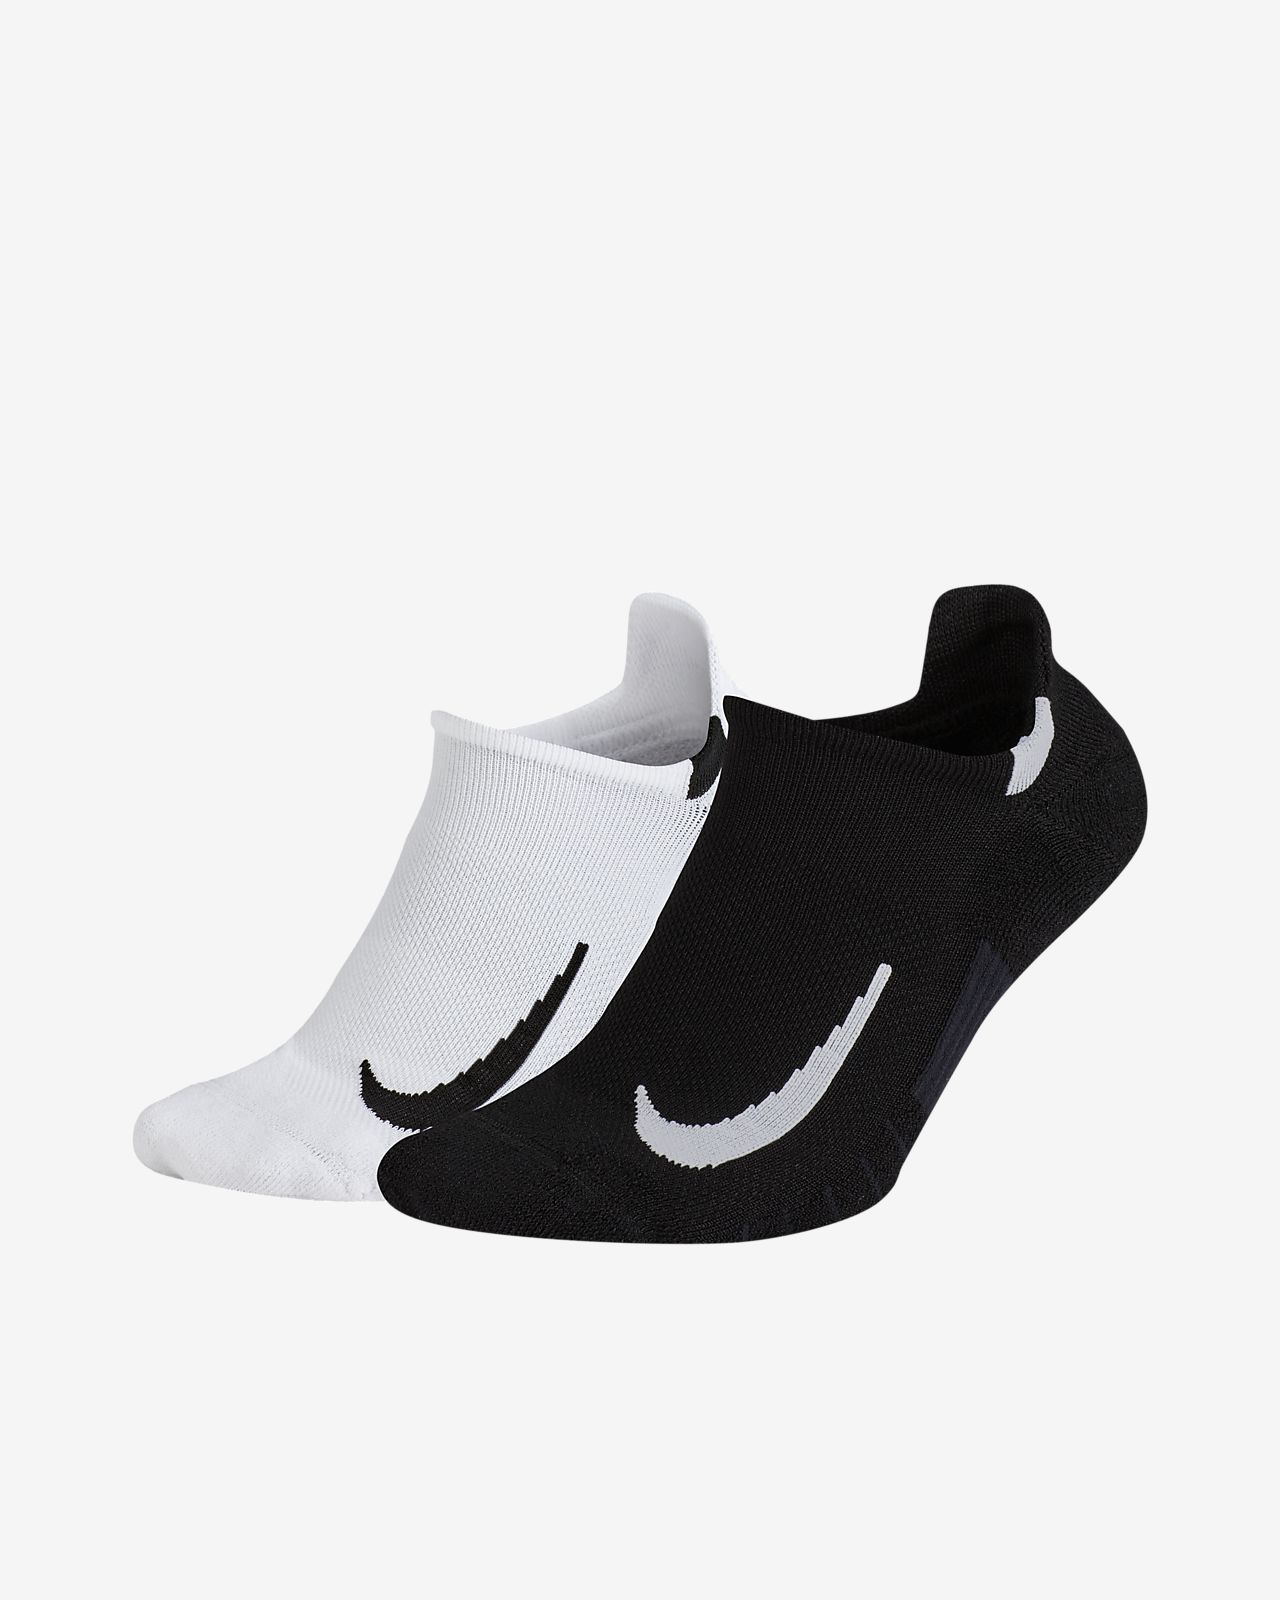 Chaussettes invisibles Nike Multiplier (2 paires)